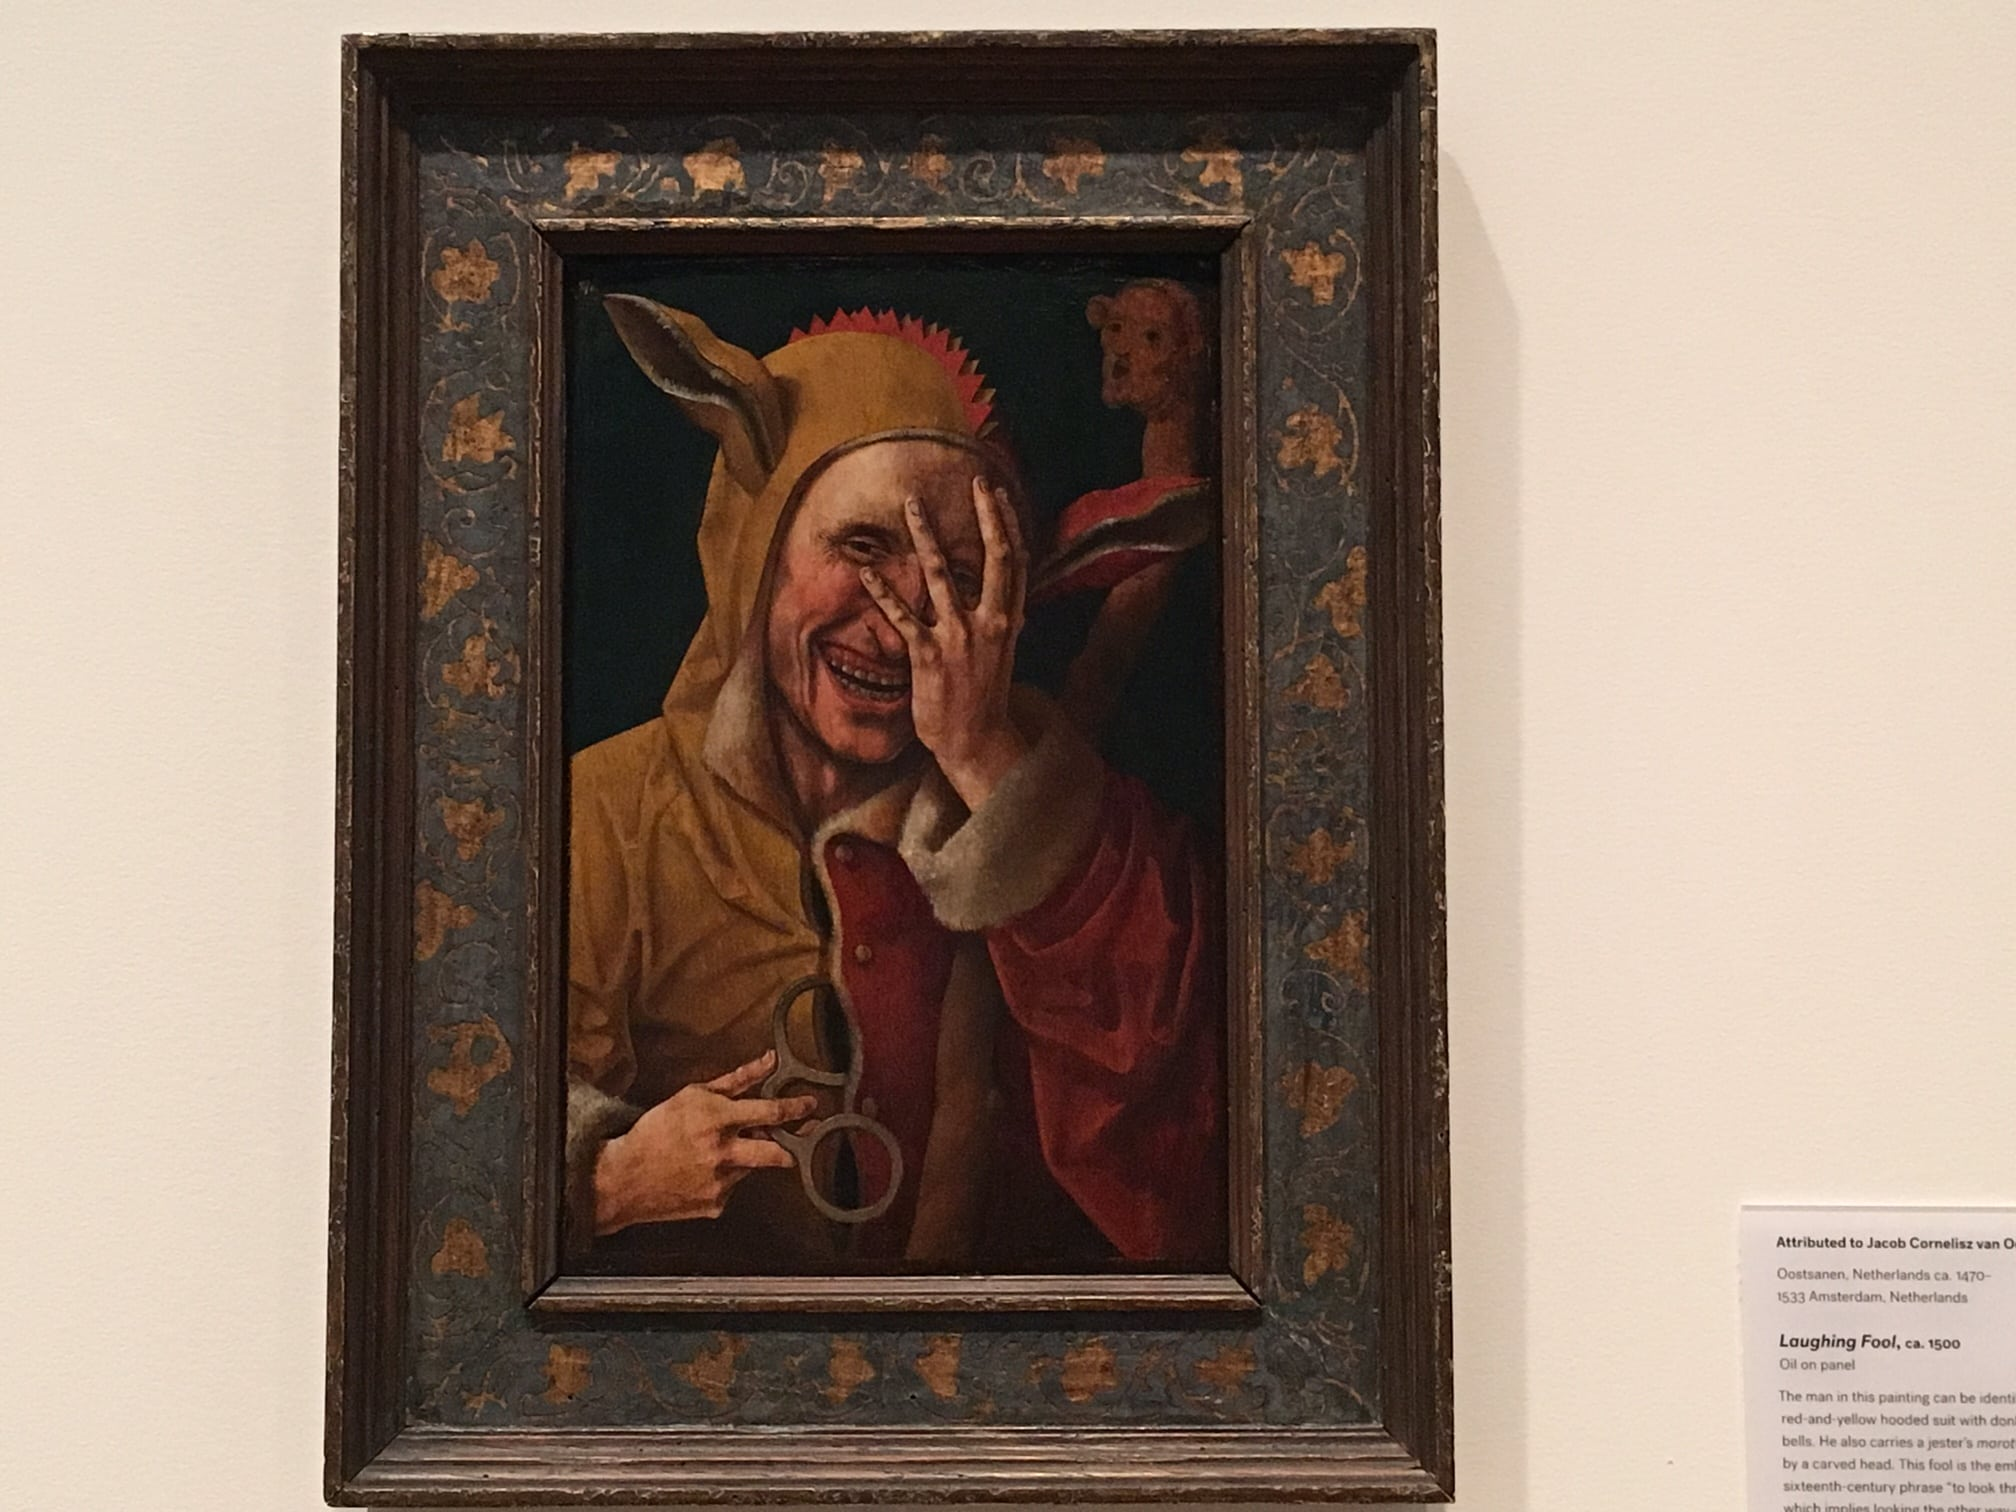 Laughing Fool, circa 1500, is attributed to Jacob Cornelisz van Oostanen. An all-time family favorite of ours, he used to hang alone at the top of a staircase, but he now hangs in a gallery with other works. The change makes sense, given his chosen profession of Fool. Our guy doesn't wear that red and yellow hooded suit with donkey ears because he's shy. The bells allow him to amp up the cacophony of foolishness should he feel apathy settling in among those he is entertaining.